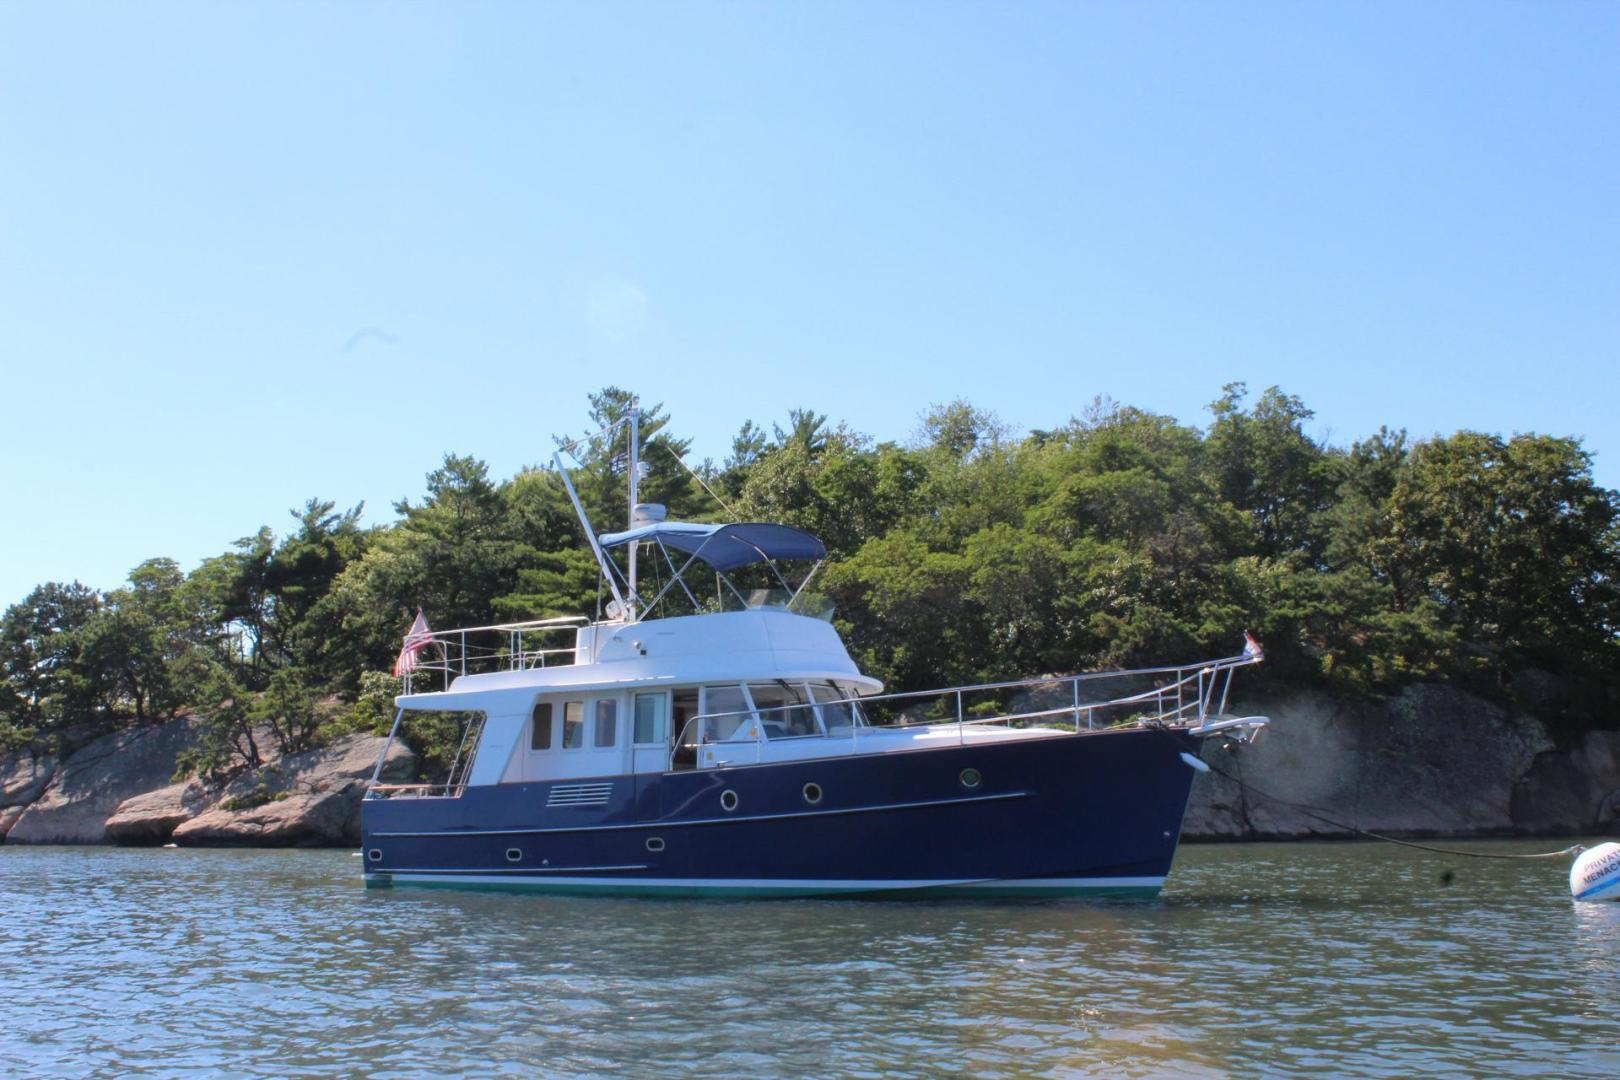 Beneteau-Swift Trawler 42 2006 -Essex-Connecticut-United States-1547730 | Thumbnail